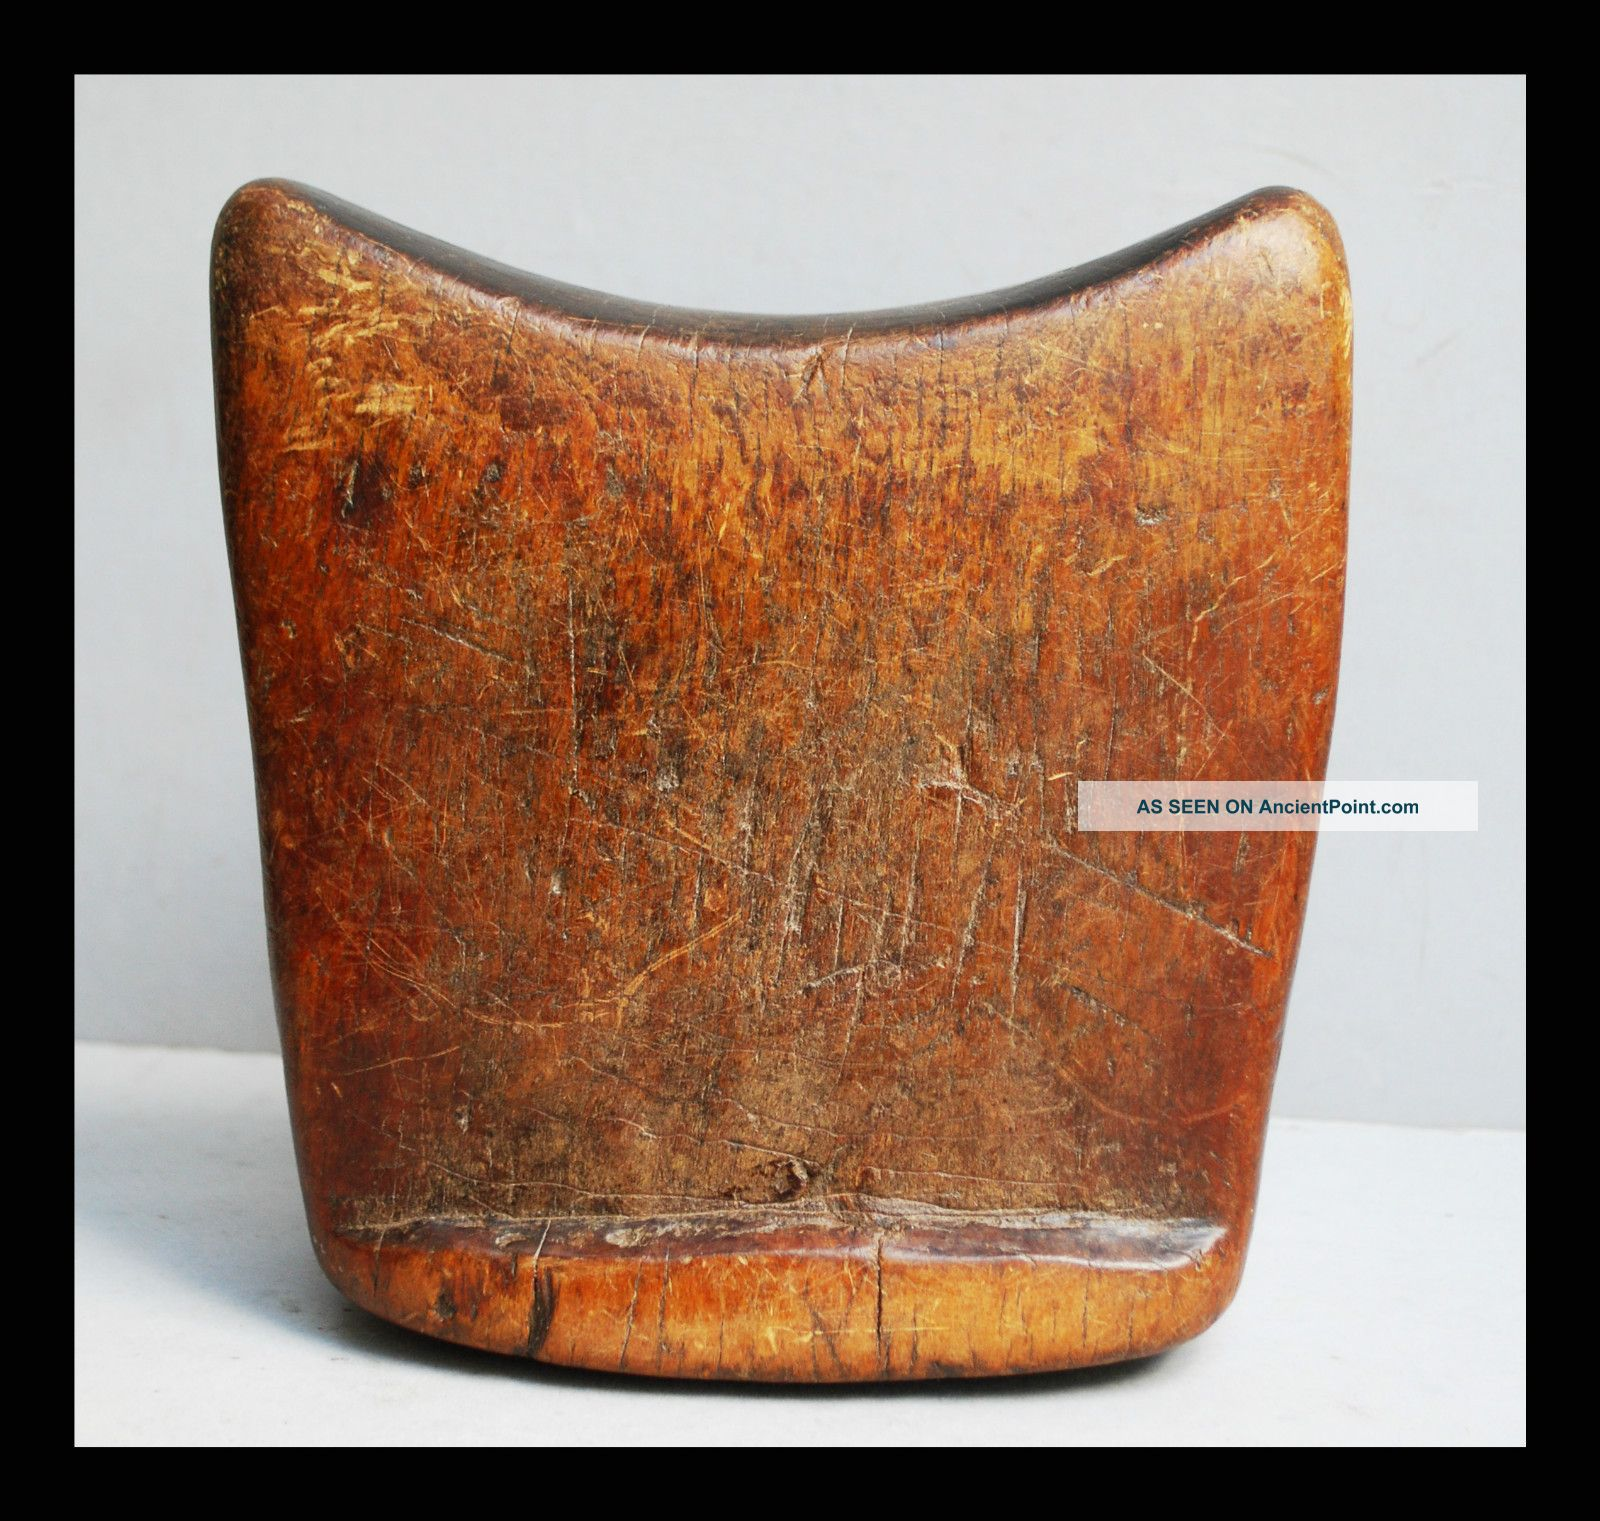 A Smoothly Shaped Headrest With Character Worn Patina Other photo